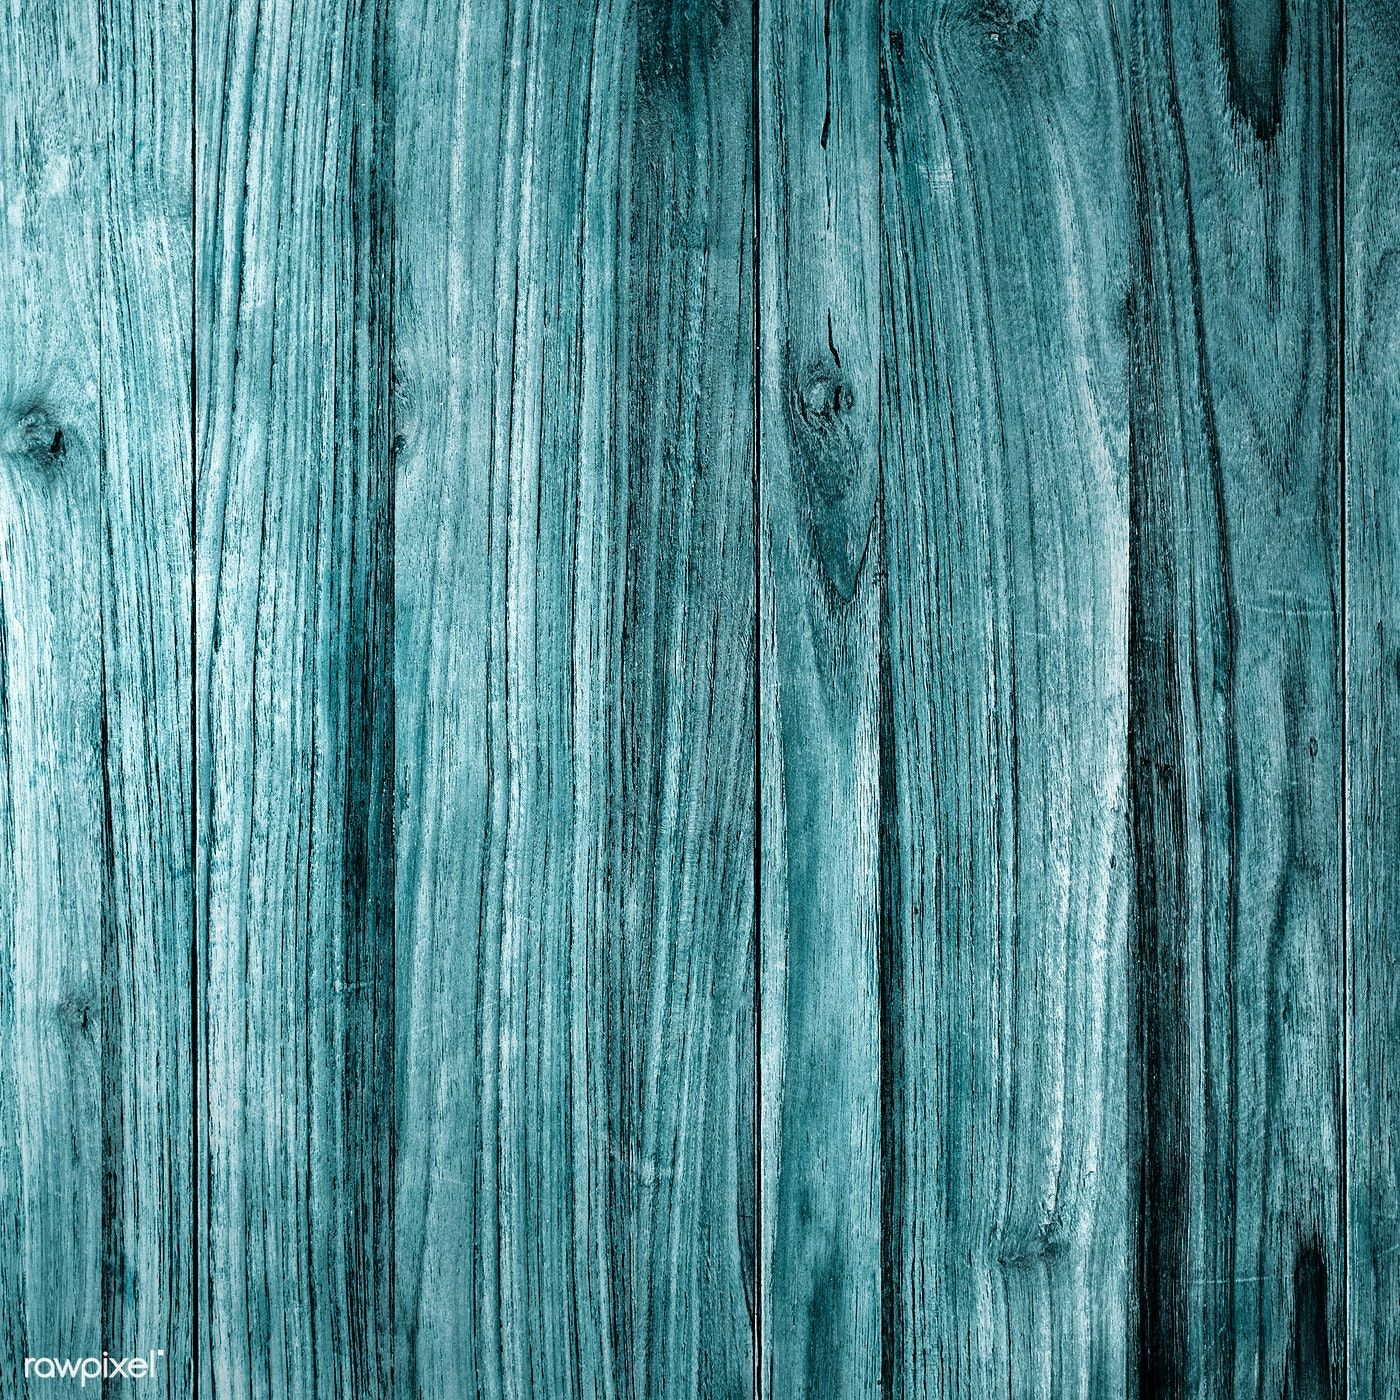 Grunge Blue Wood Textured Design Background Free Image By Rawpixel Com Manotang Wood Texture Blue Wood Wood Texture Background